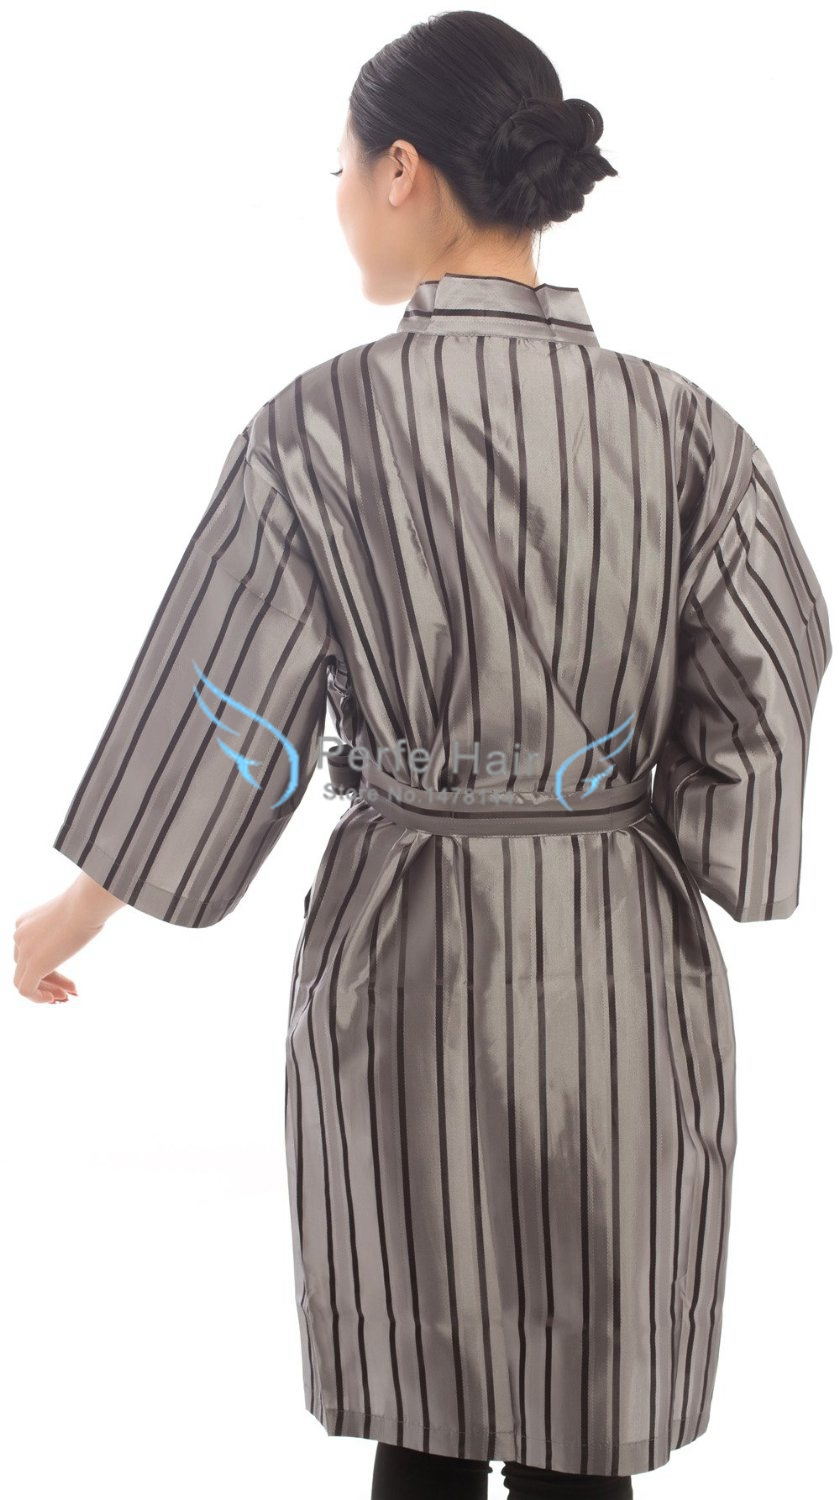 Online Shop Salon Client Gown Hairdressing Gowns Kimono Style- 43 ...